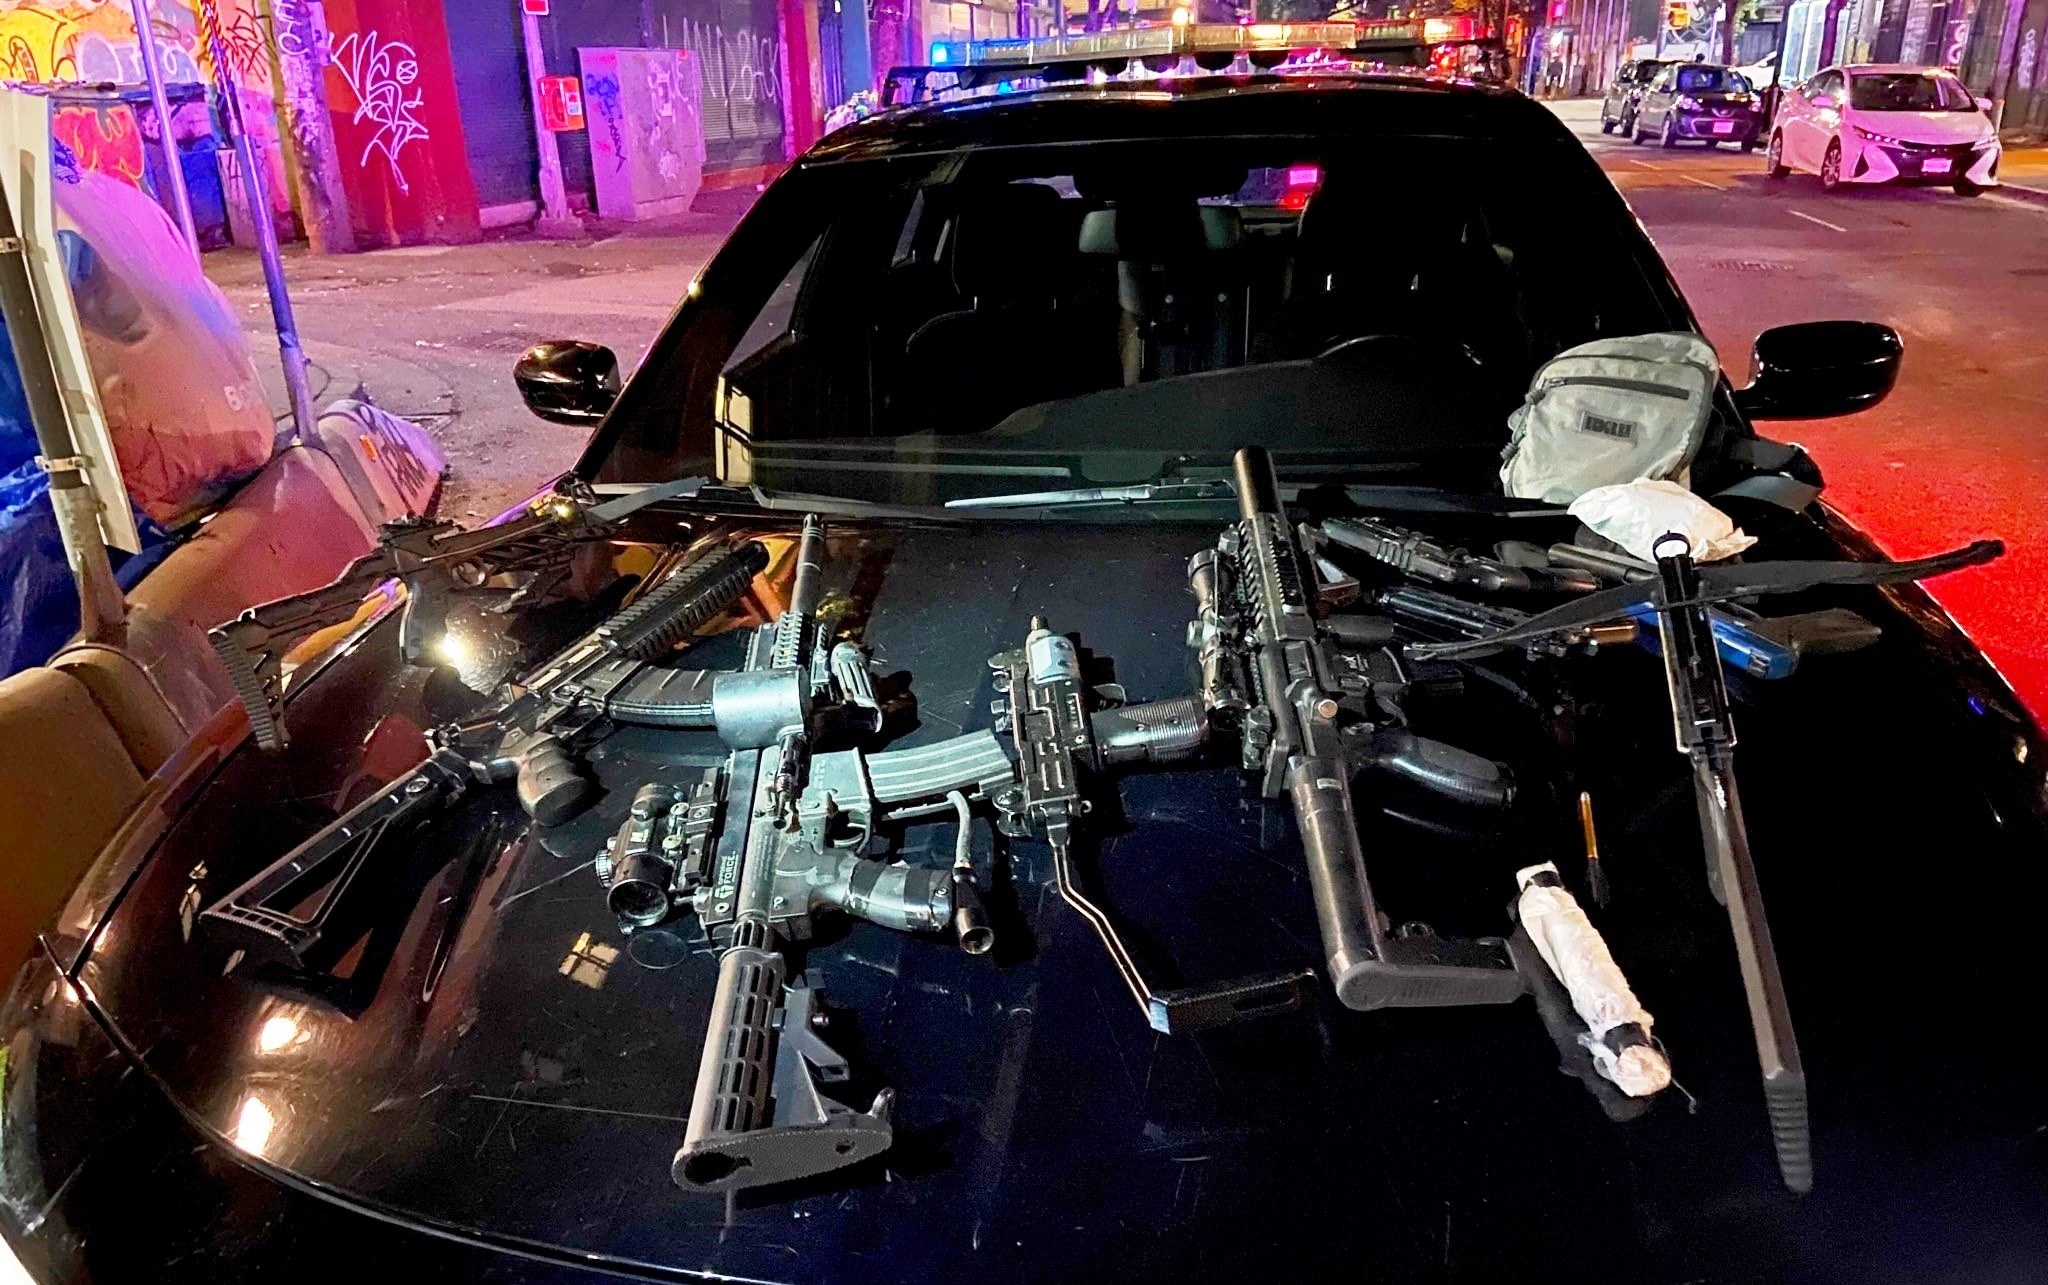 Vancouver police discover weapons stash after homeless shot with arrow